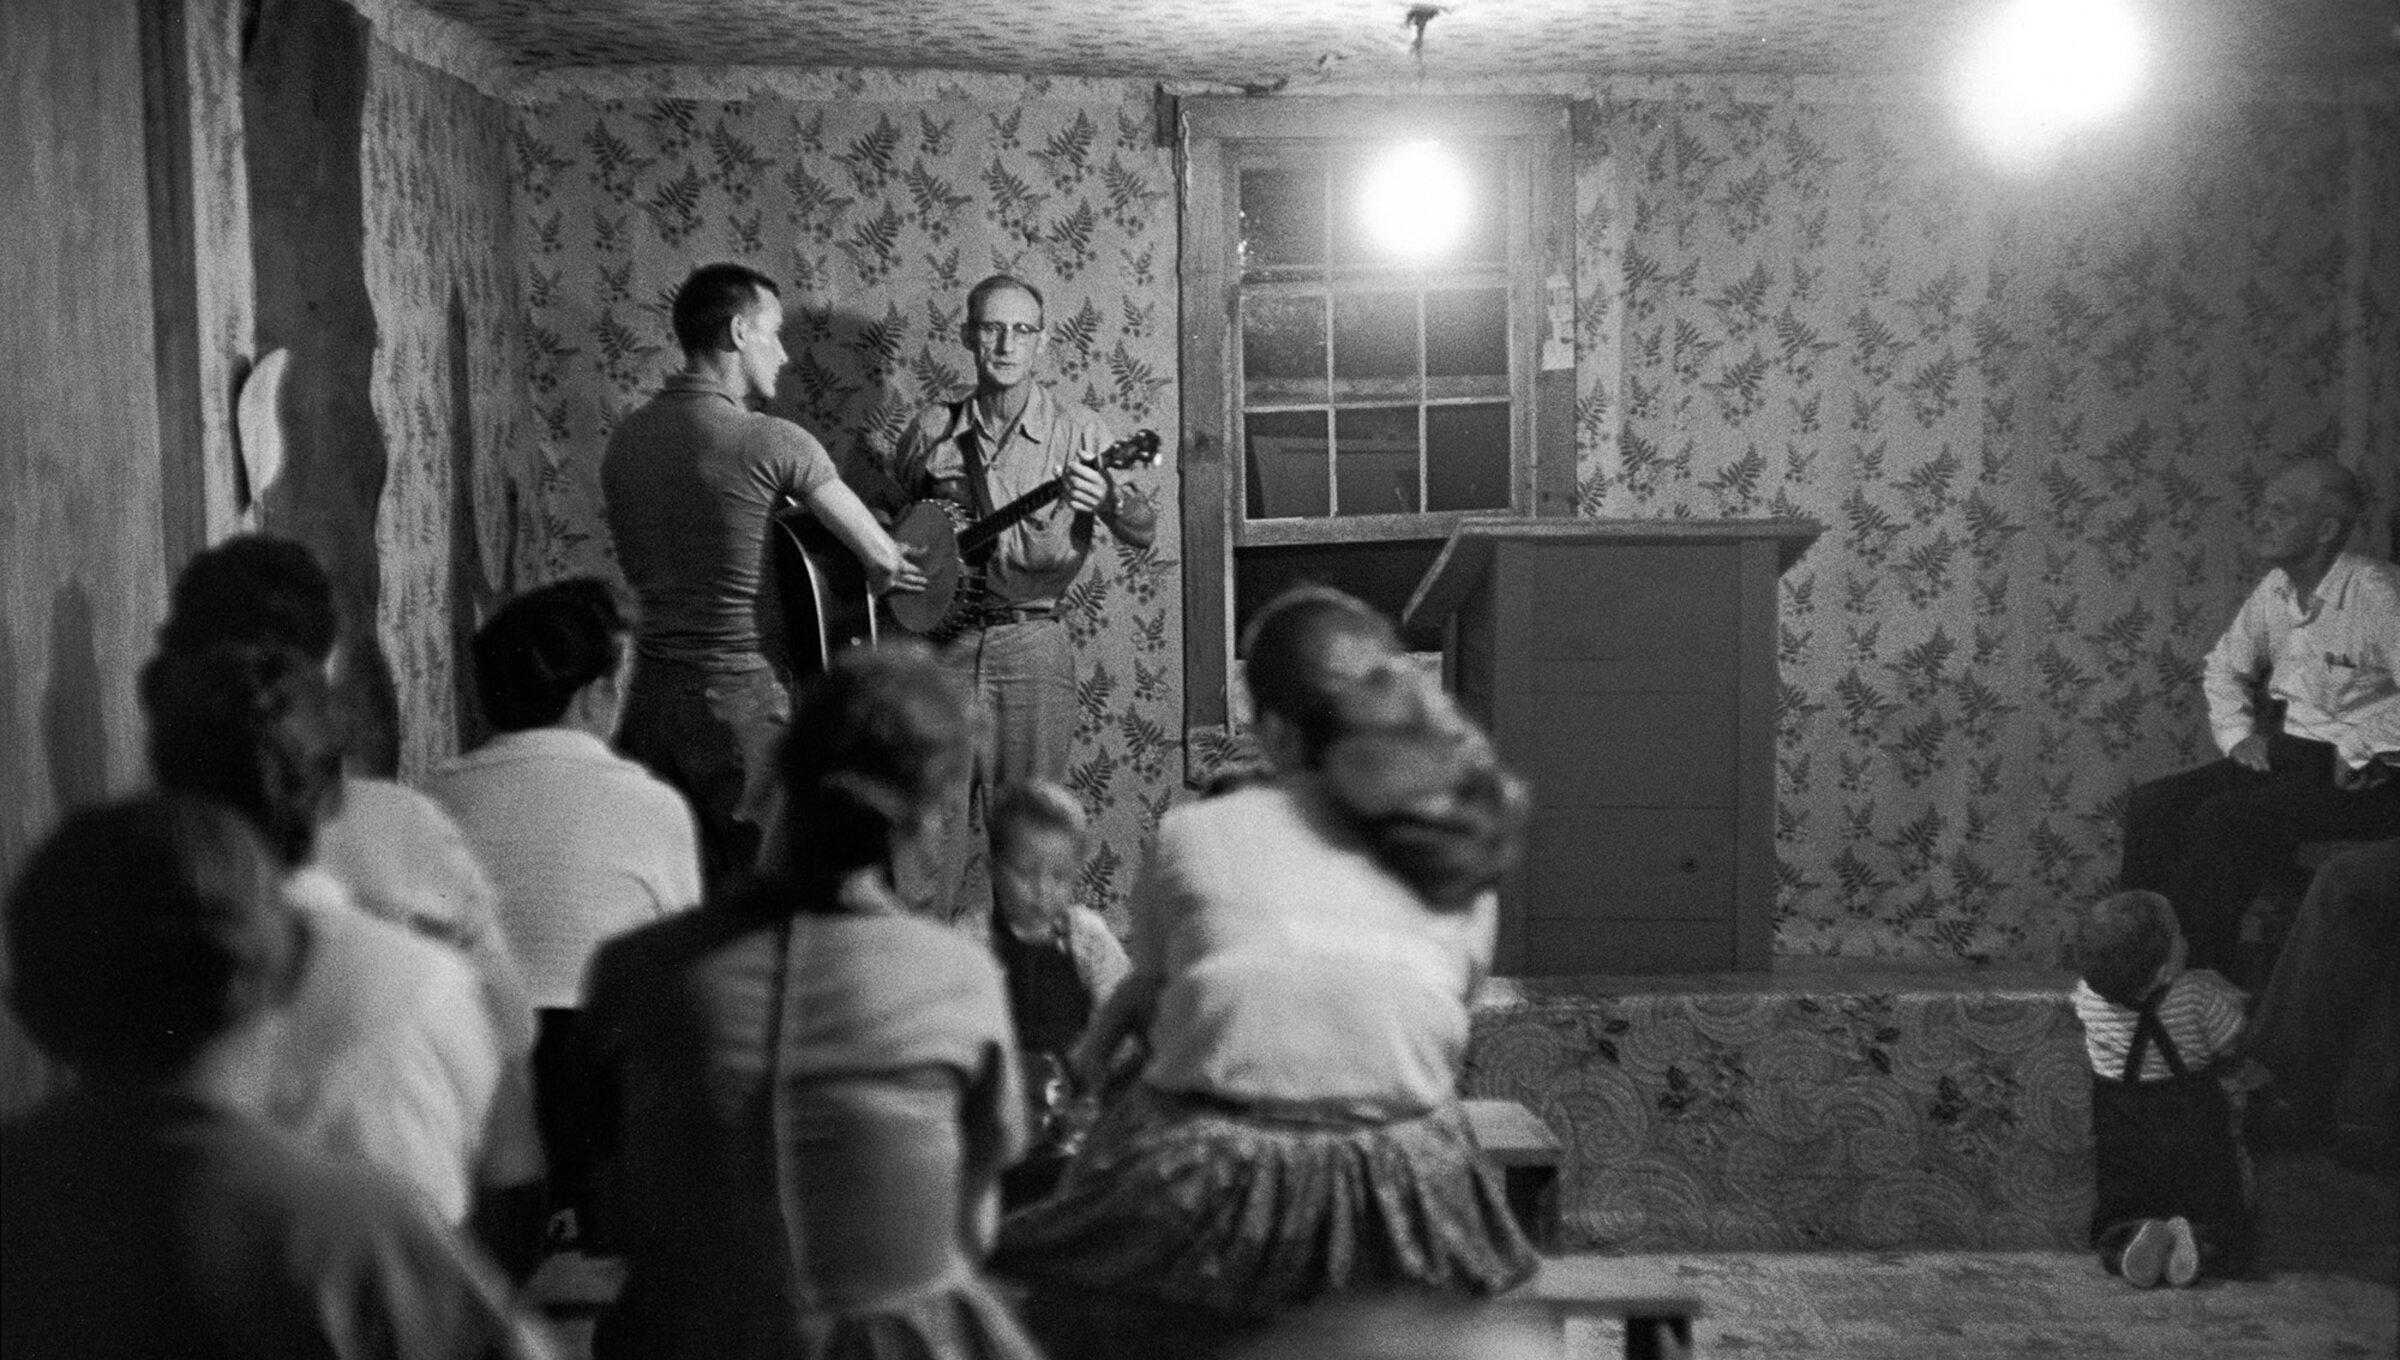 Faith, struggle and song intertwine in this classic film on Appalachian music | Psyche